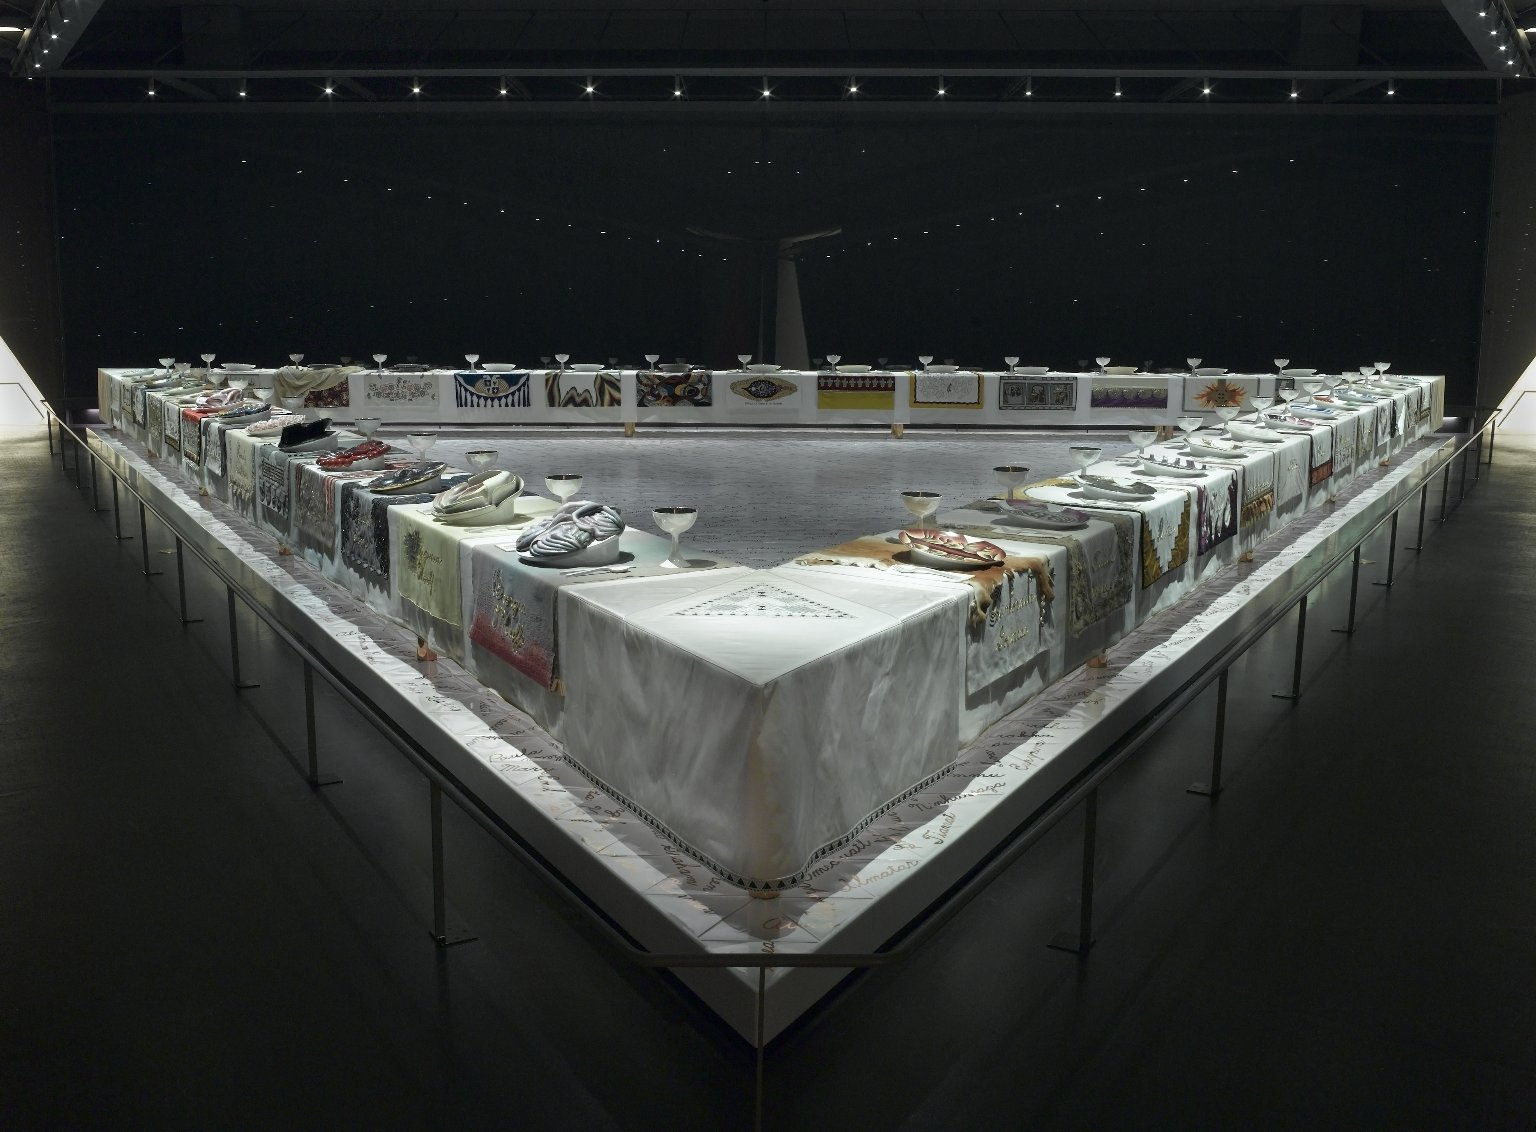 The Dinner Party by Judy Chicago